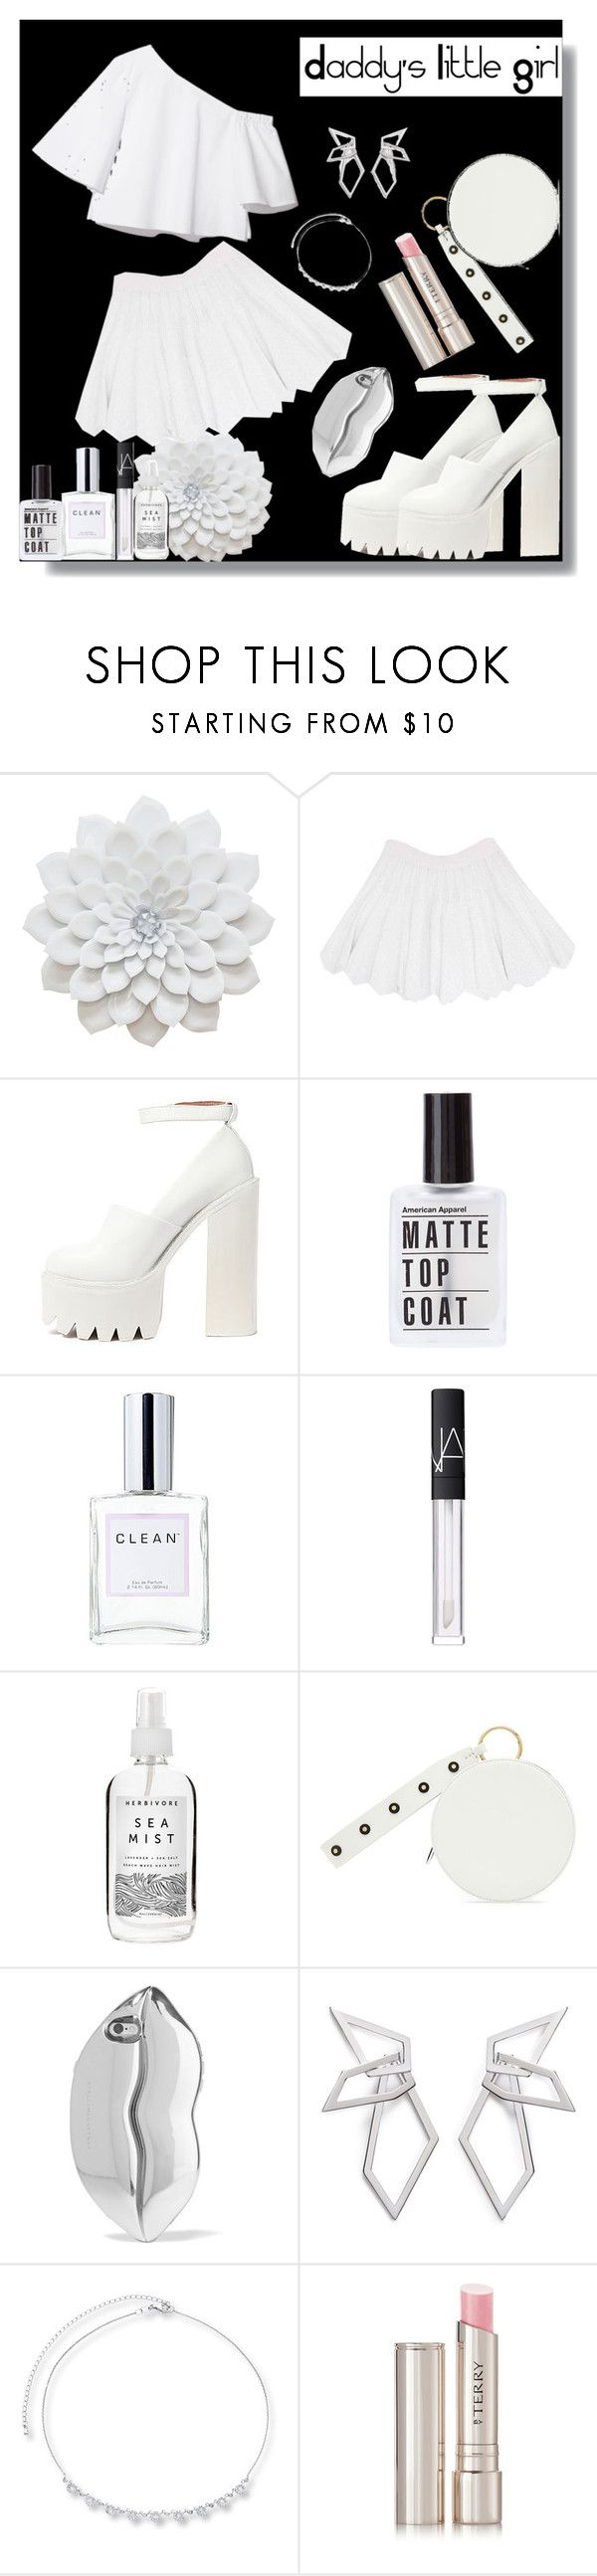 """""""Daddy's Little Girl"""" by mutiahrana ❤ liked on Polyvore featuring Alaïa, Jeffrey Campbell, CLEAN, NARS Cosmetics, Herbivore, Diane Von Furstenberg, STELLA McCARTNEY, W. Britt and By Terry"""